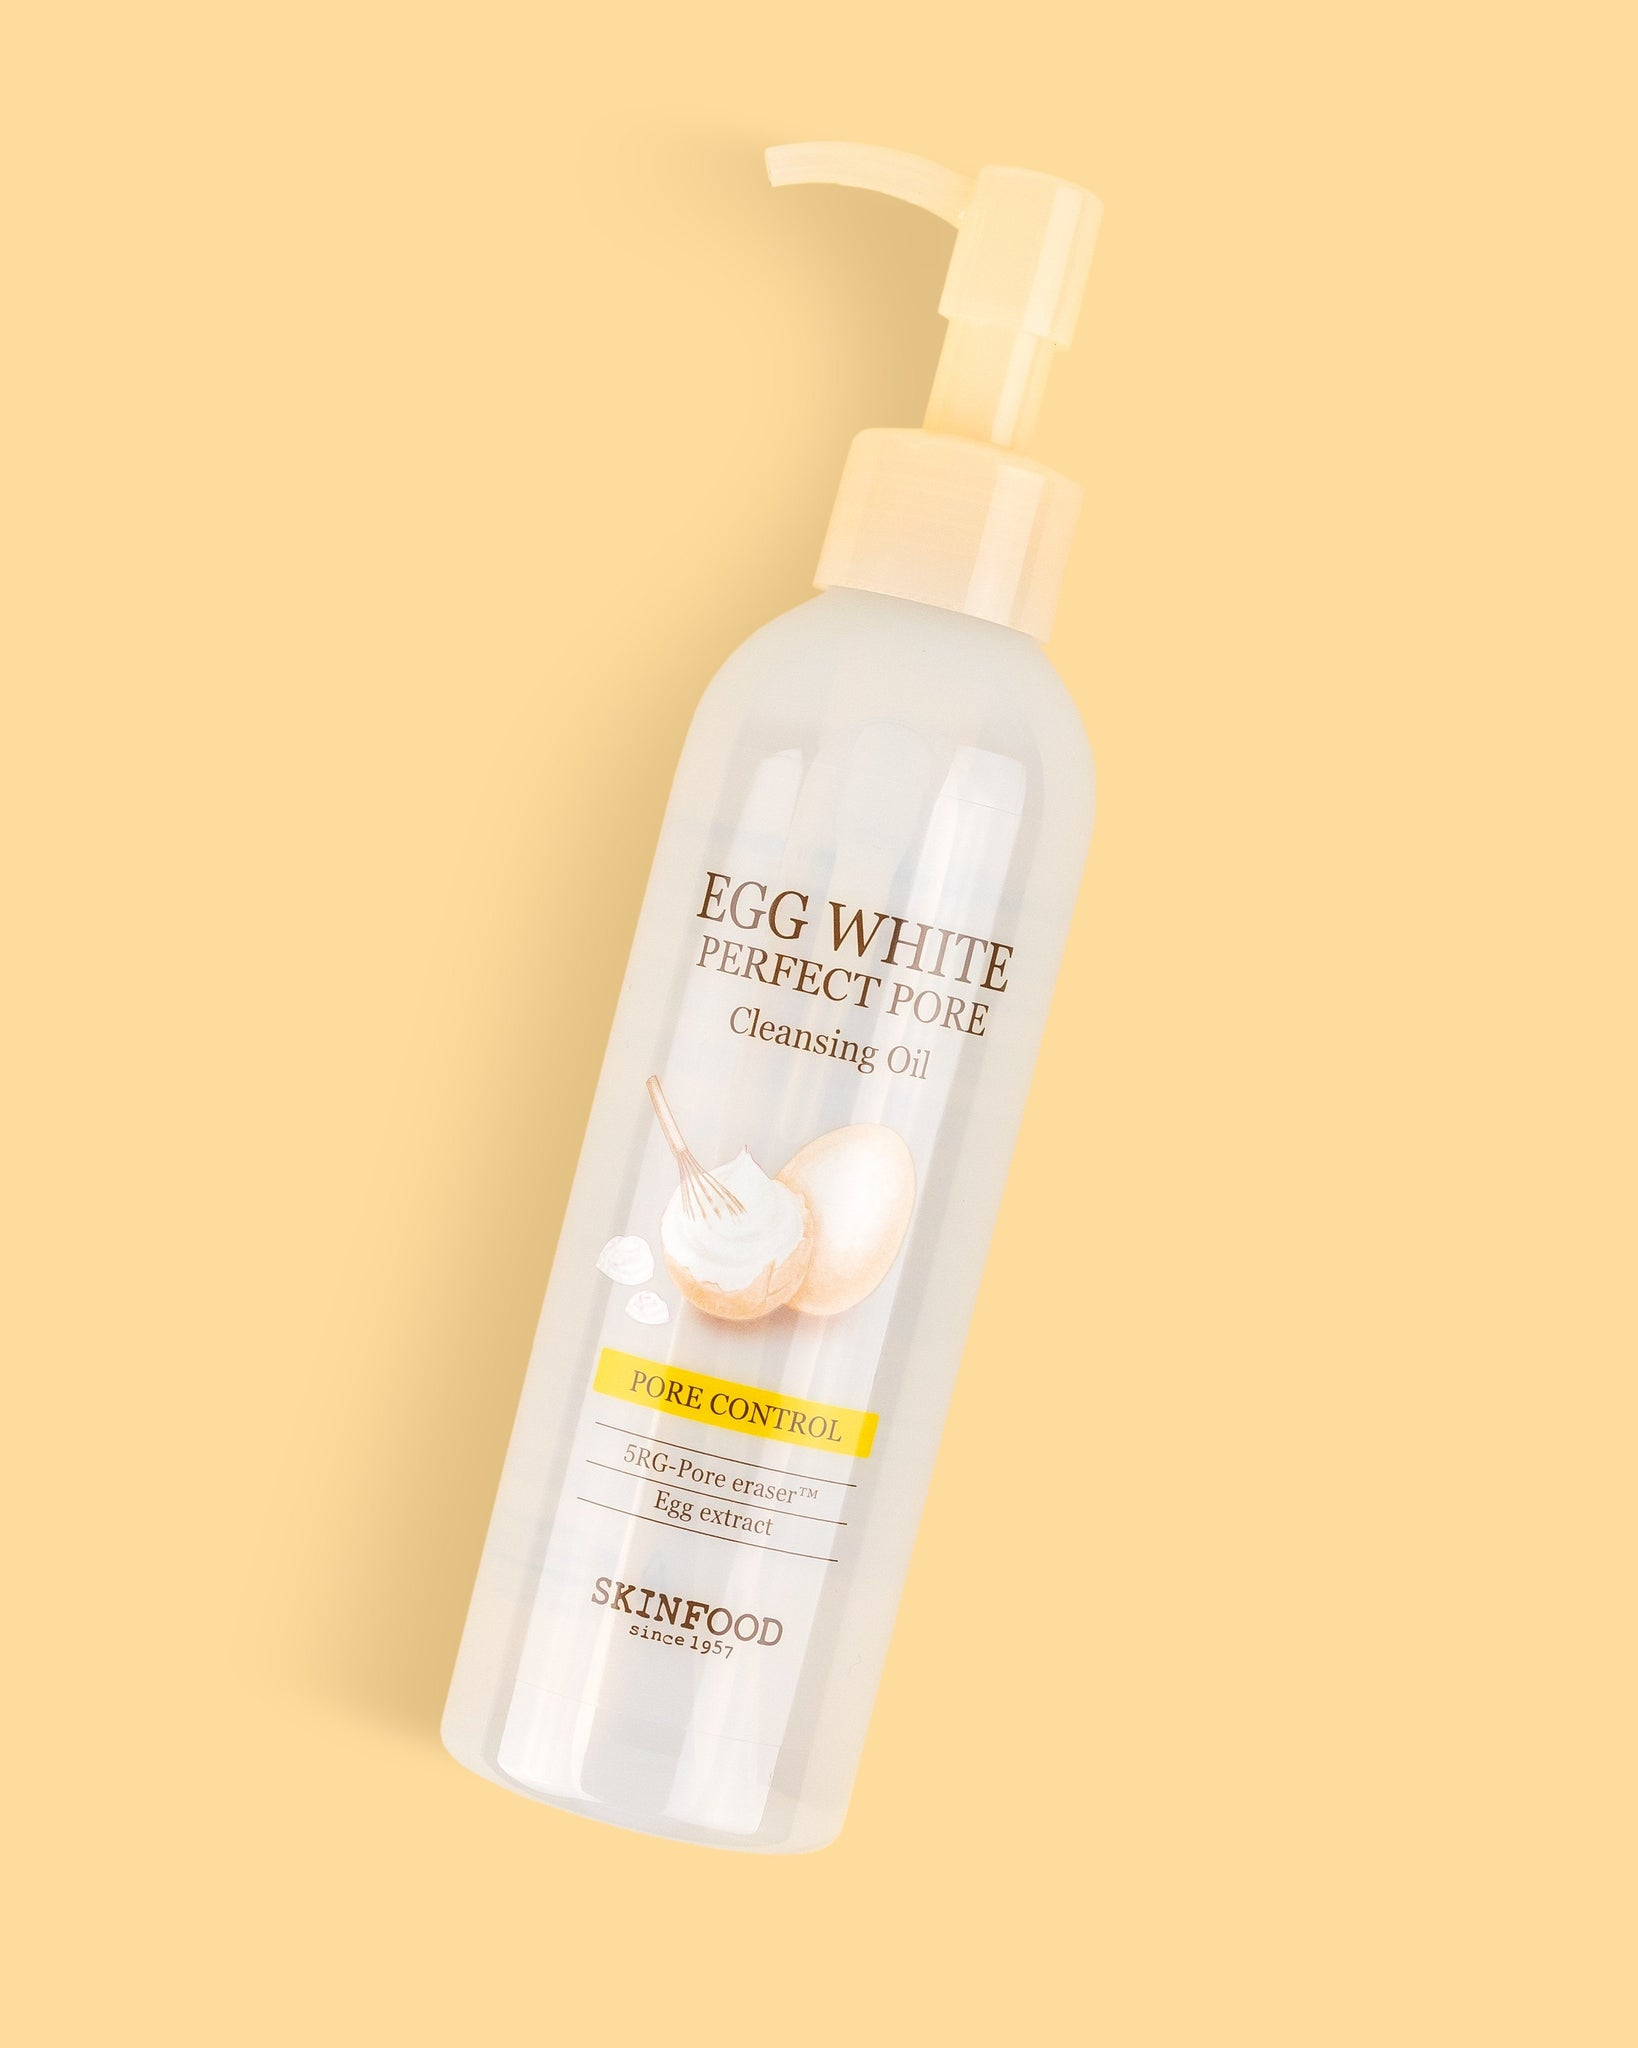 Egg White Perfect Pore Cleansing Oil